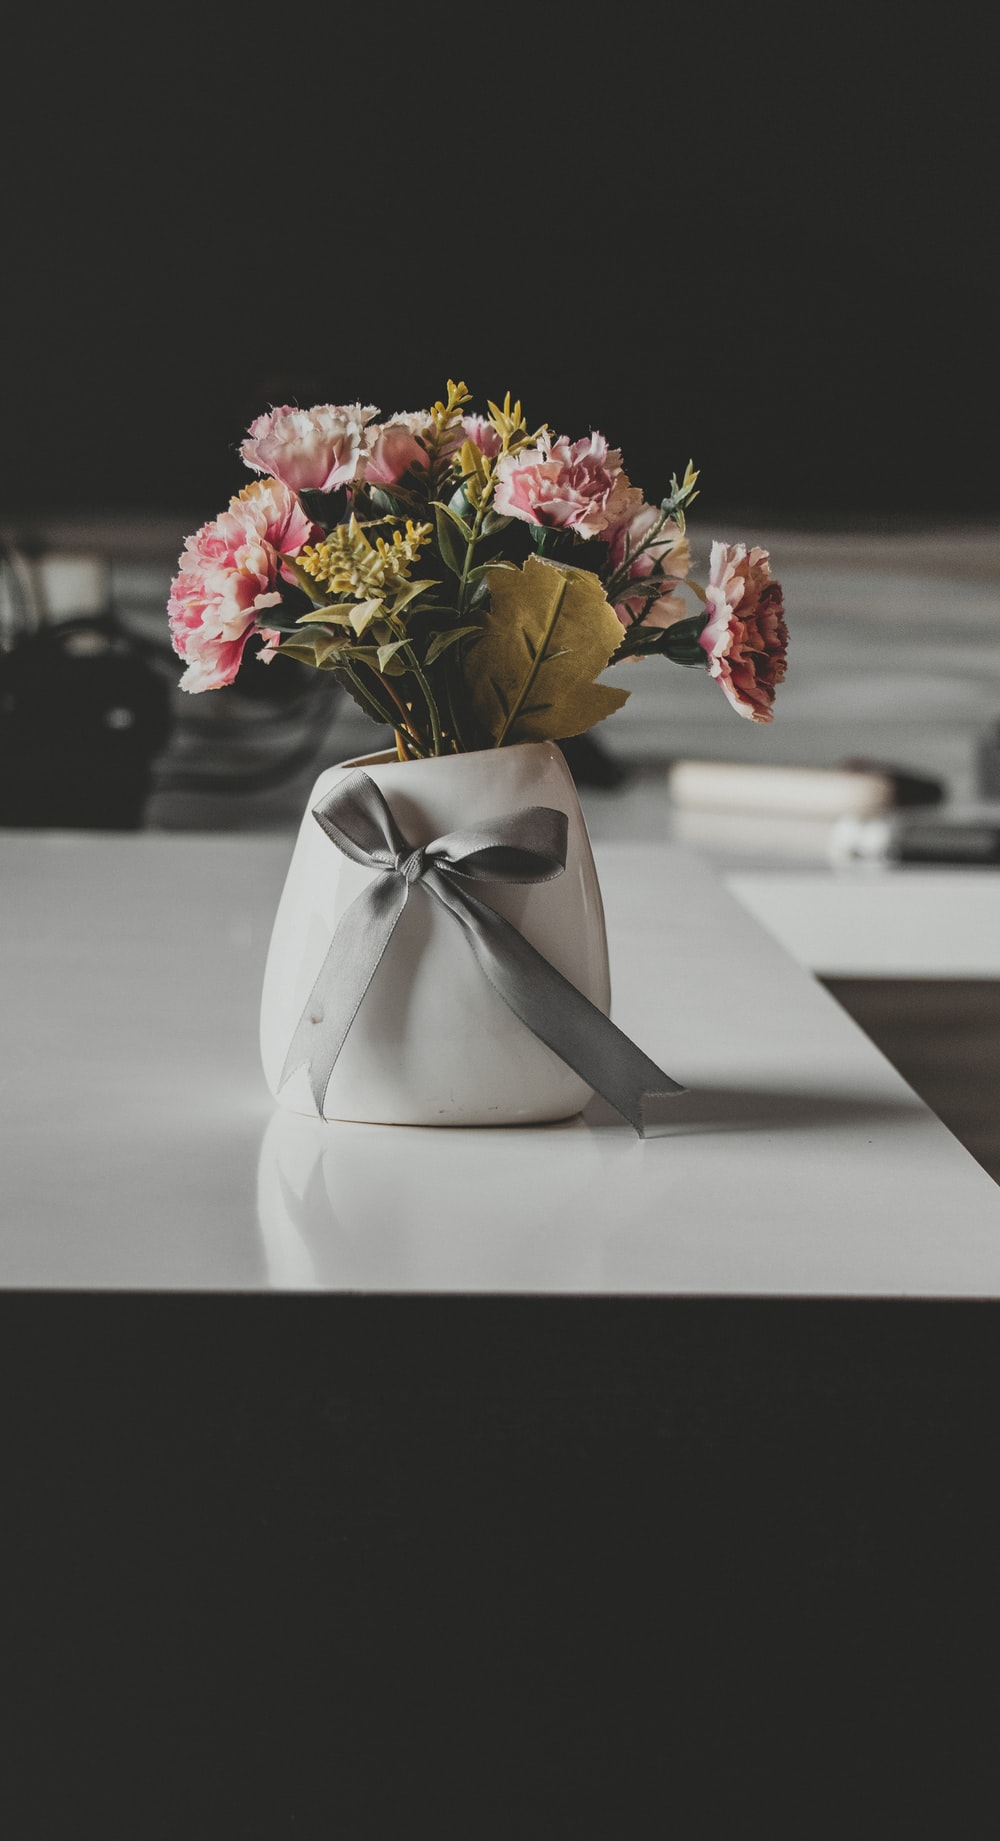 pink and yellow flowers in white vase on table